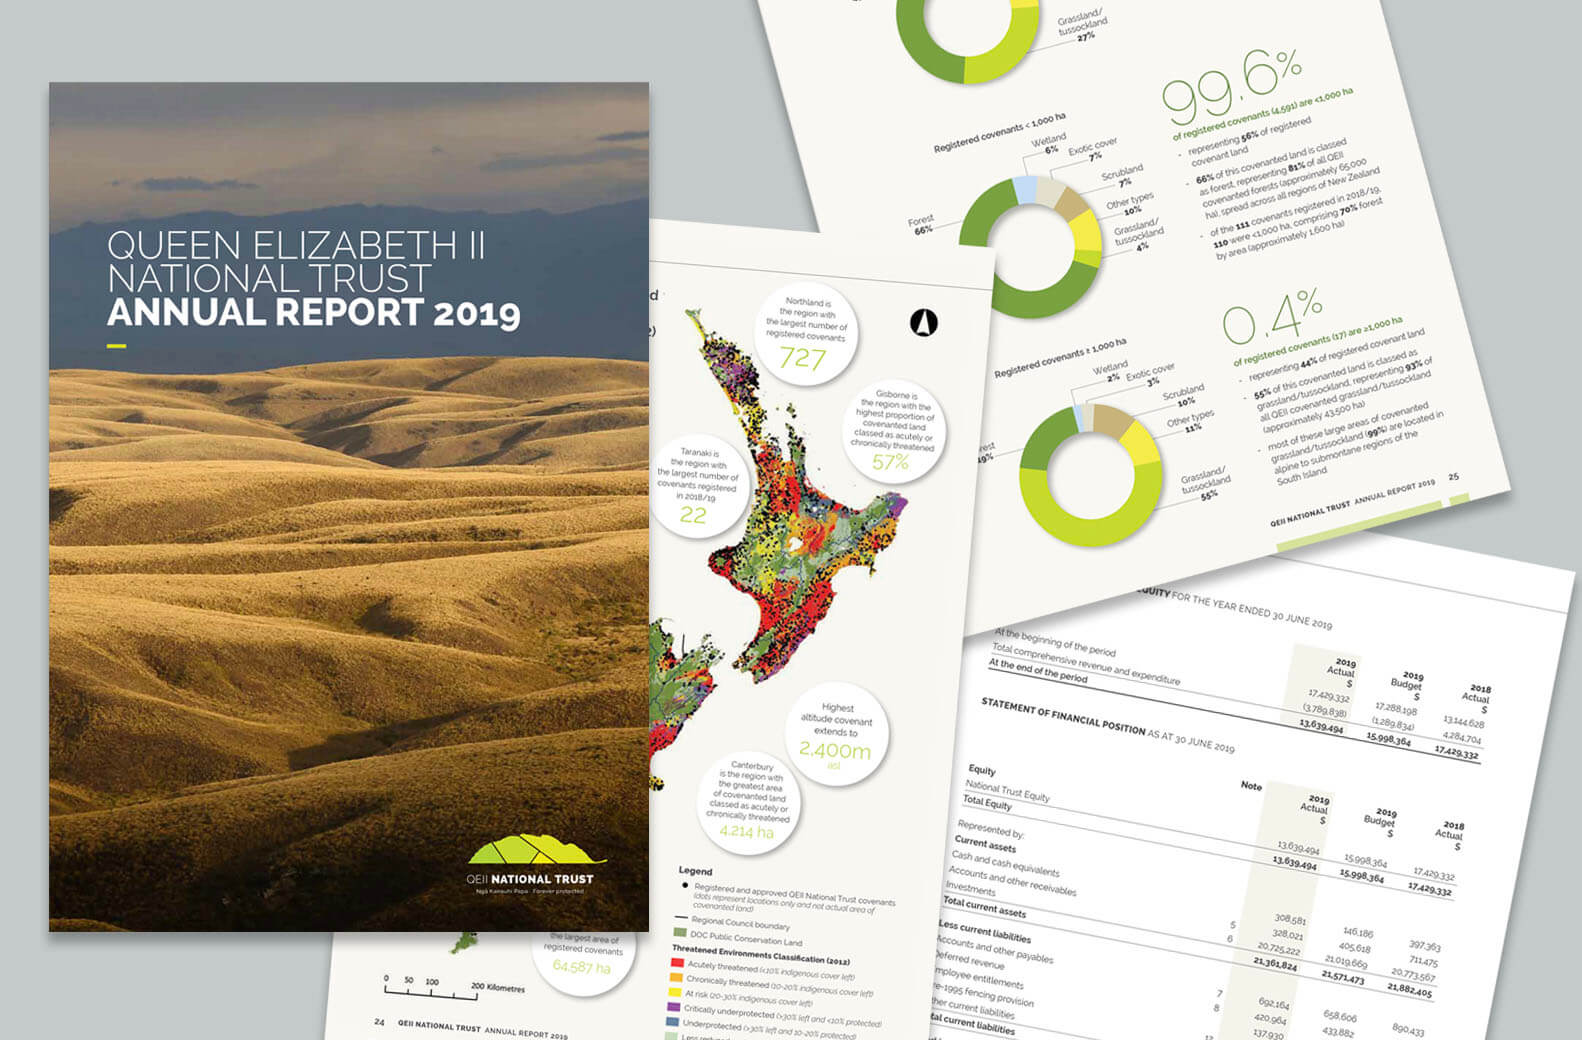 Pages from an Annual Report